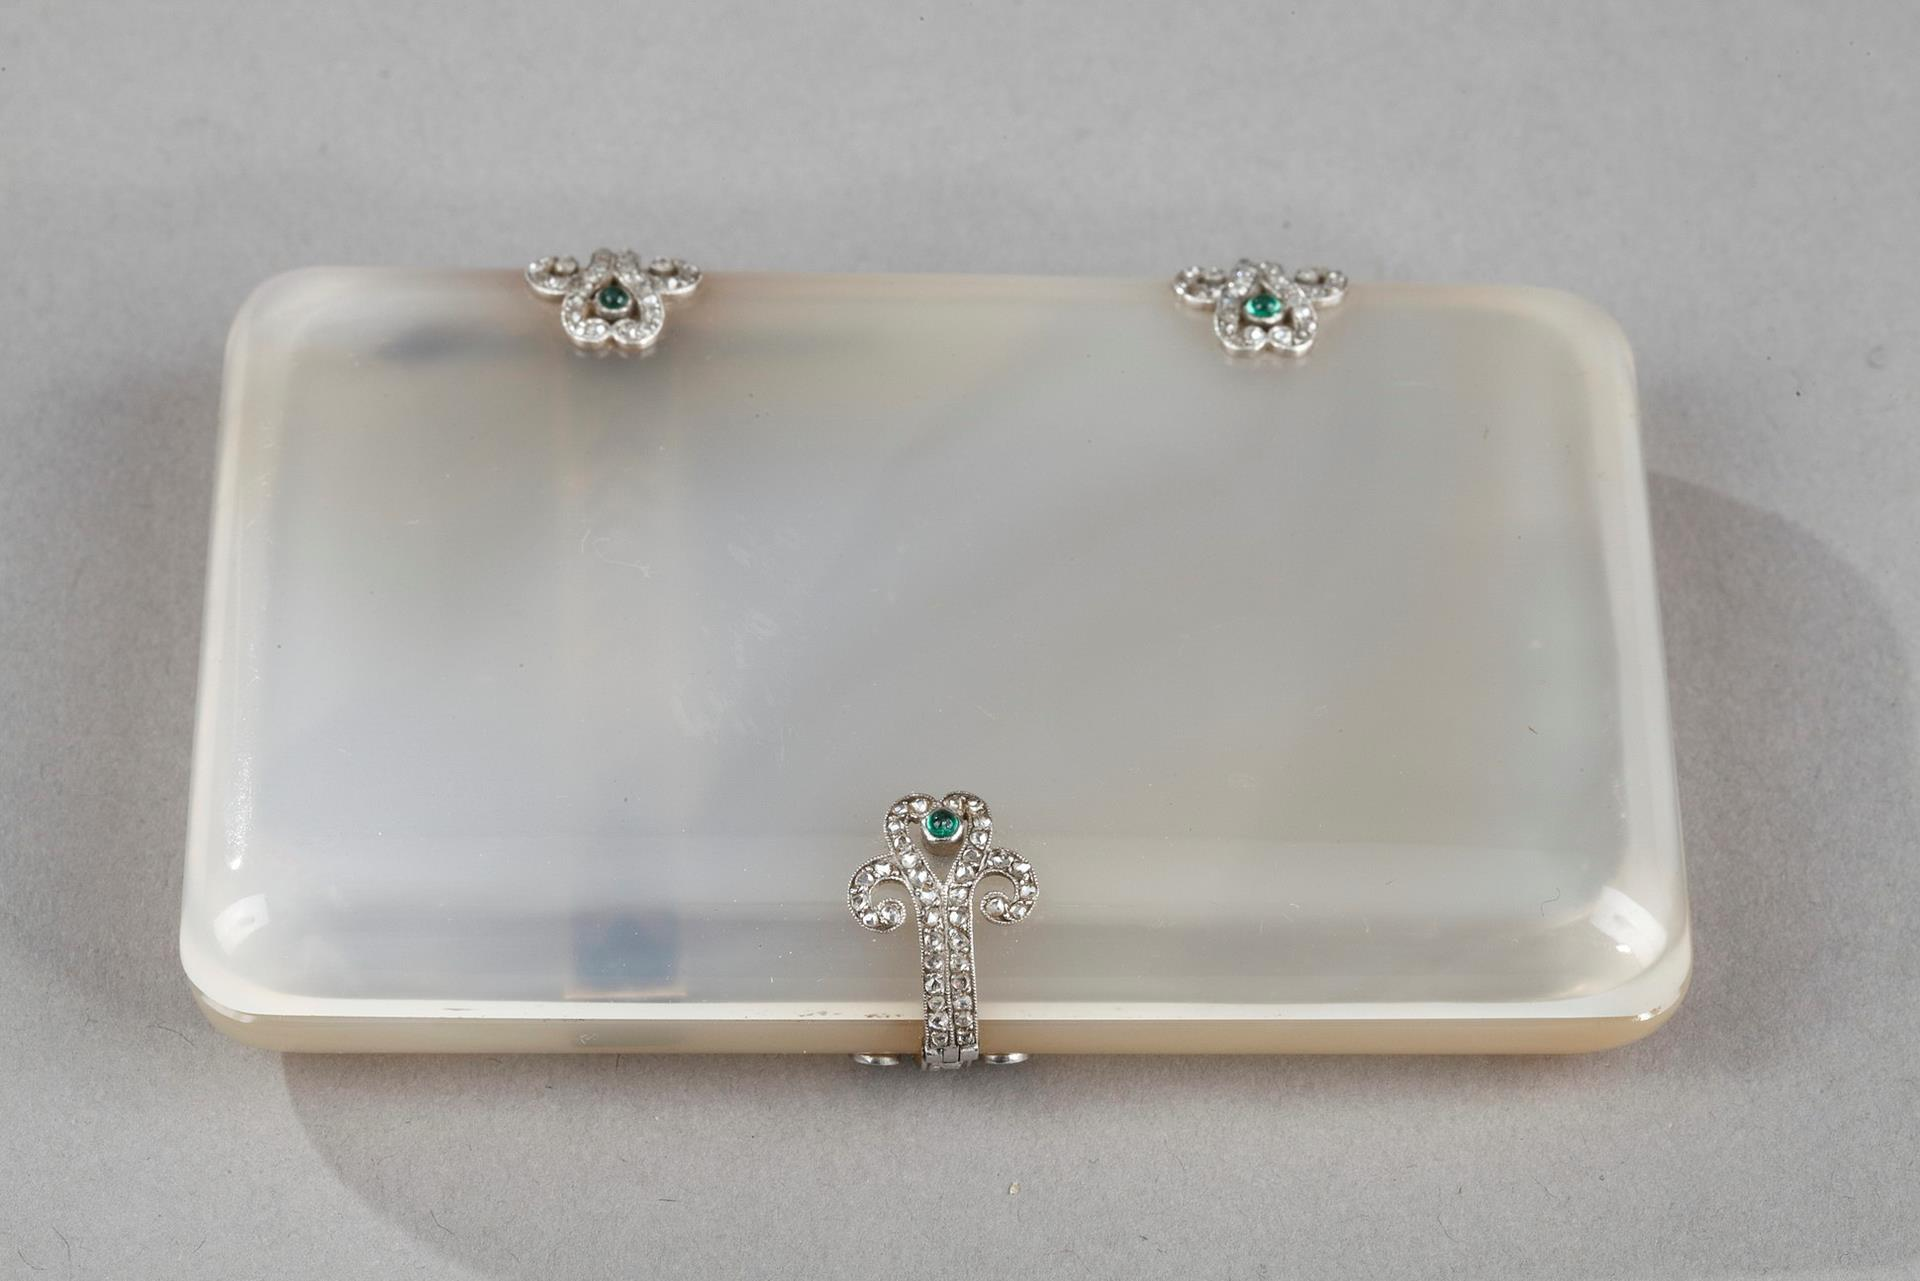 Art Deco case with agate, gold, diamonds and emeralds.